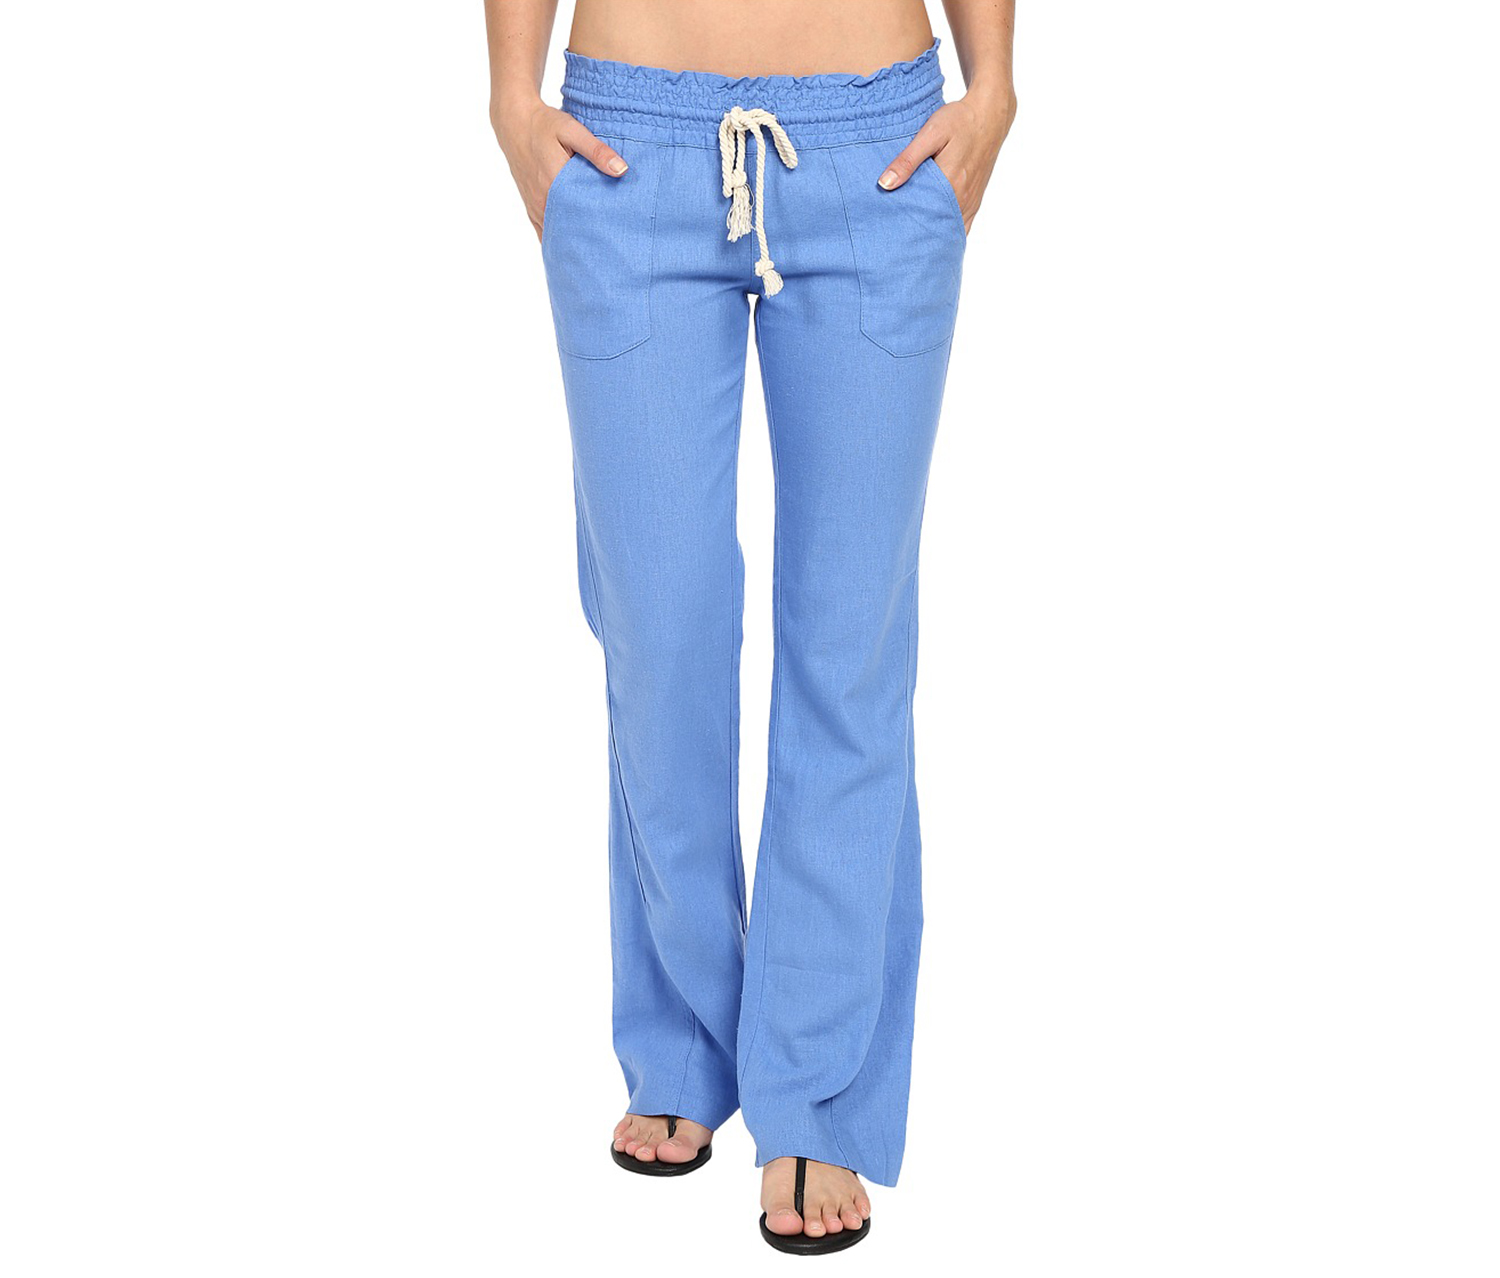 b84524180f Shop Roxy Roxy Women's Oceanside Pant, Blue for Women Clothing in ...